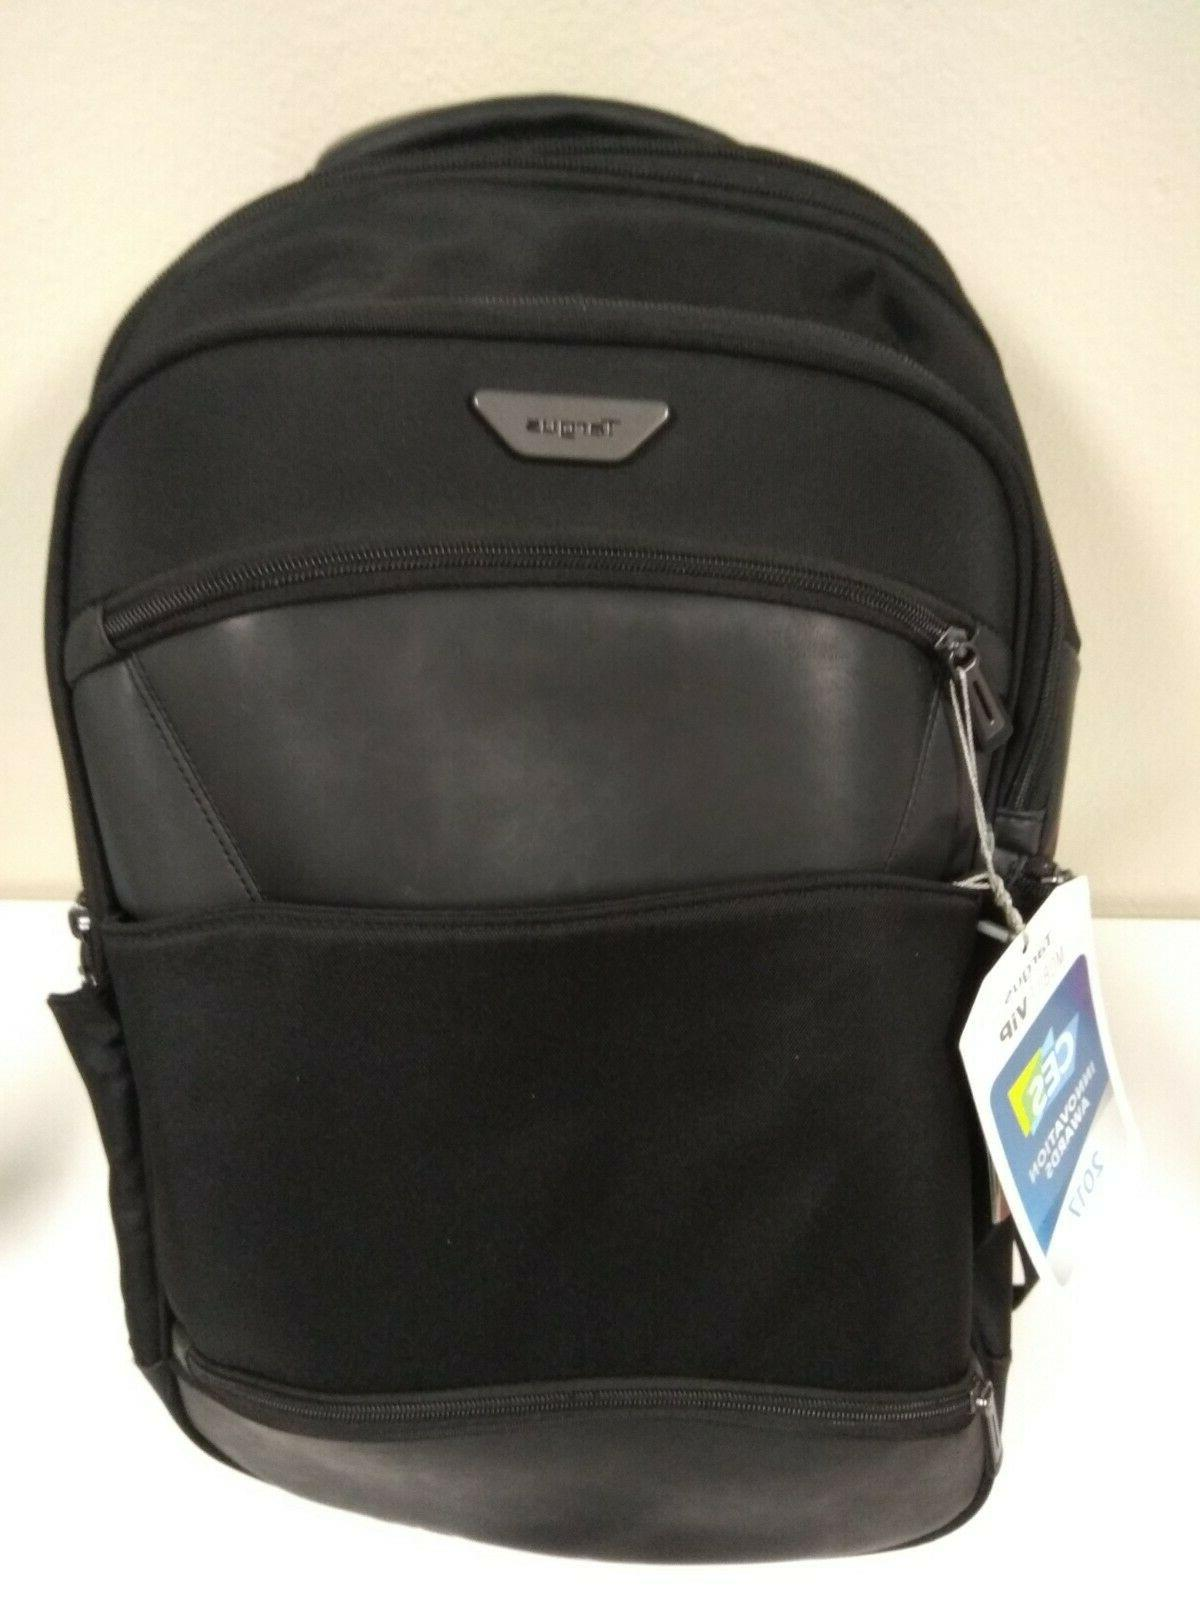 mobile vip backpack for up 15 6